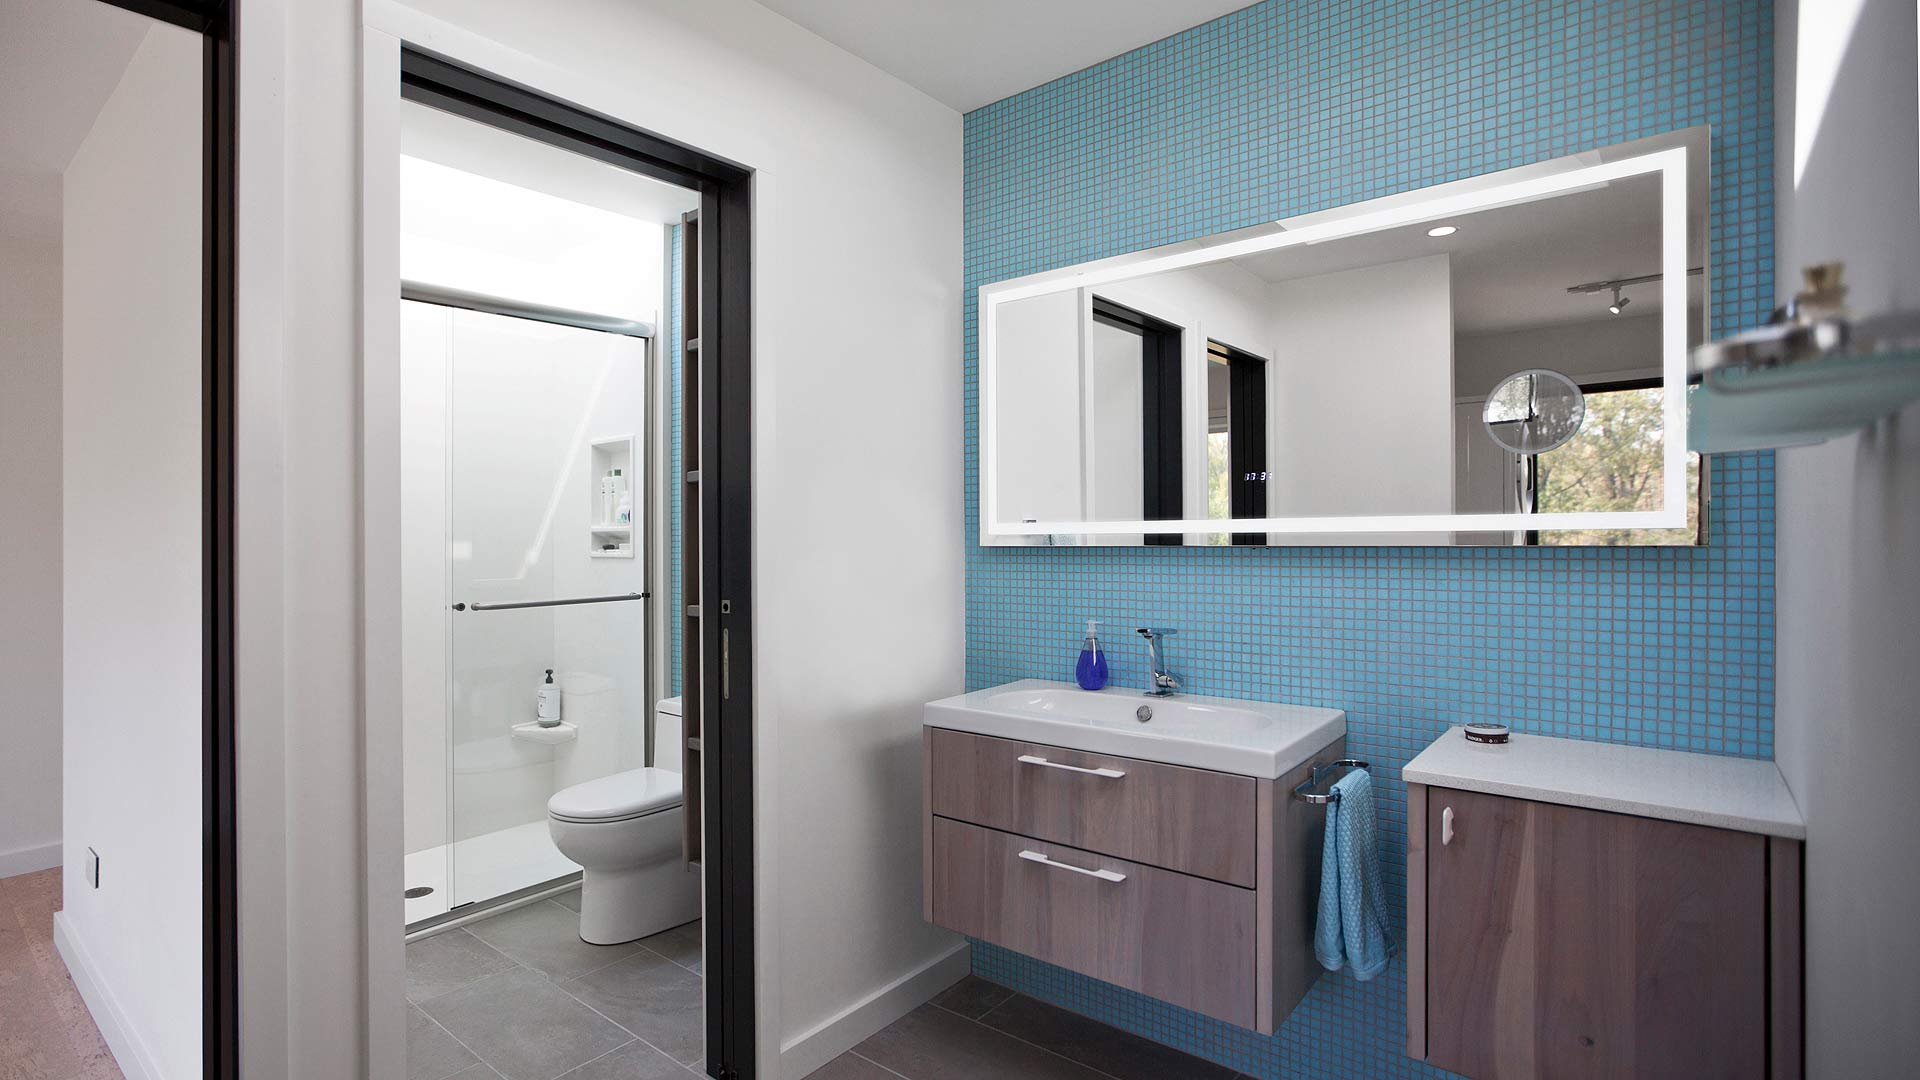 Shared childrens' area bathroom features skylit shower and vanity area with integrally lighted mirror and wall-hung cabinetry - New Modern House 1 (Copperwood) - Zionsville, IN